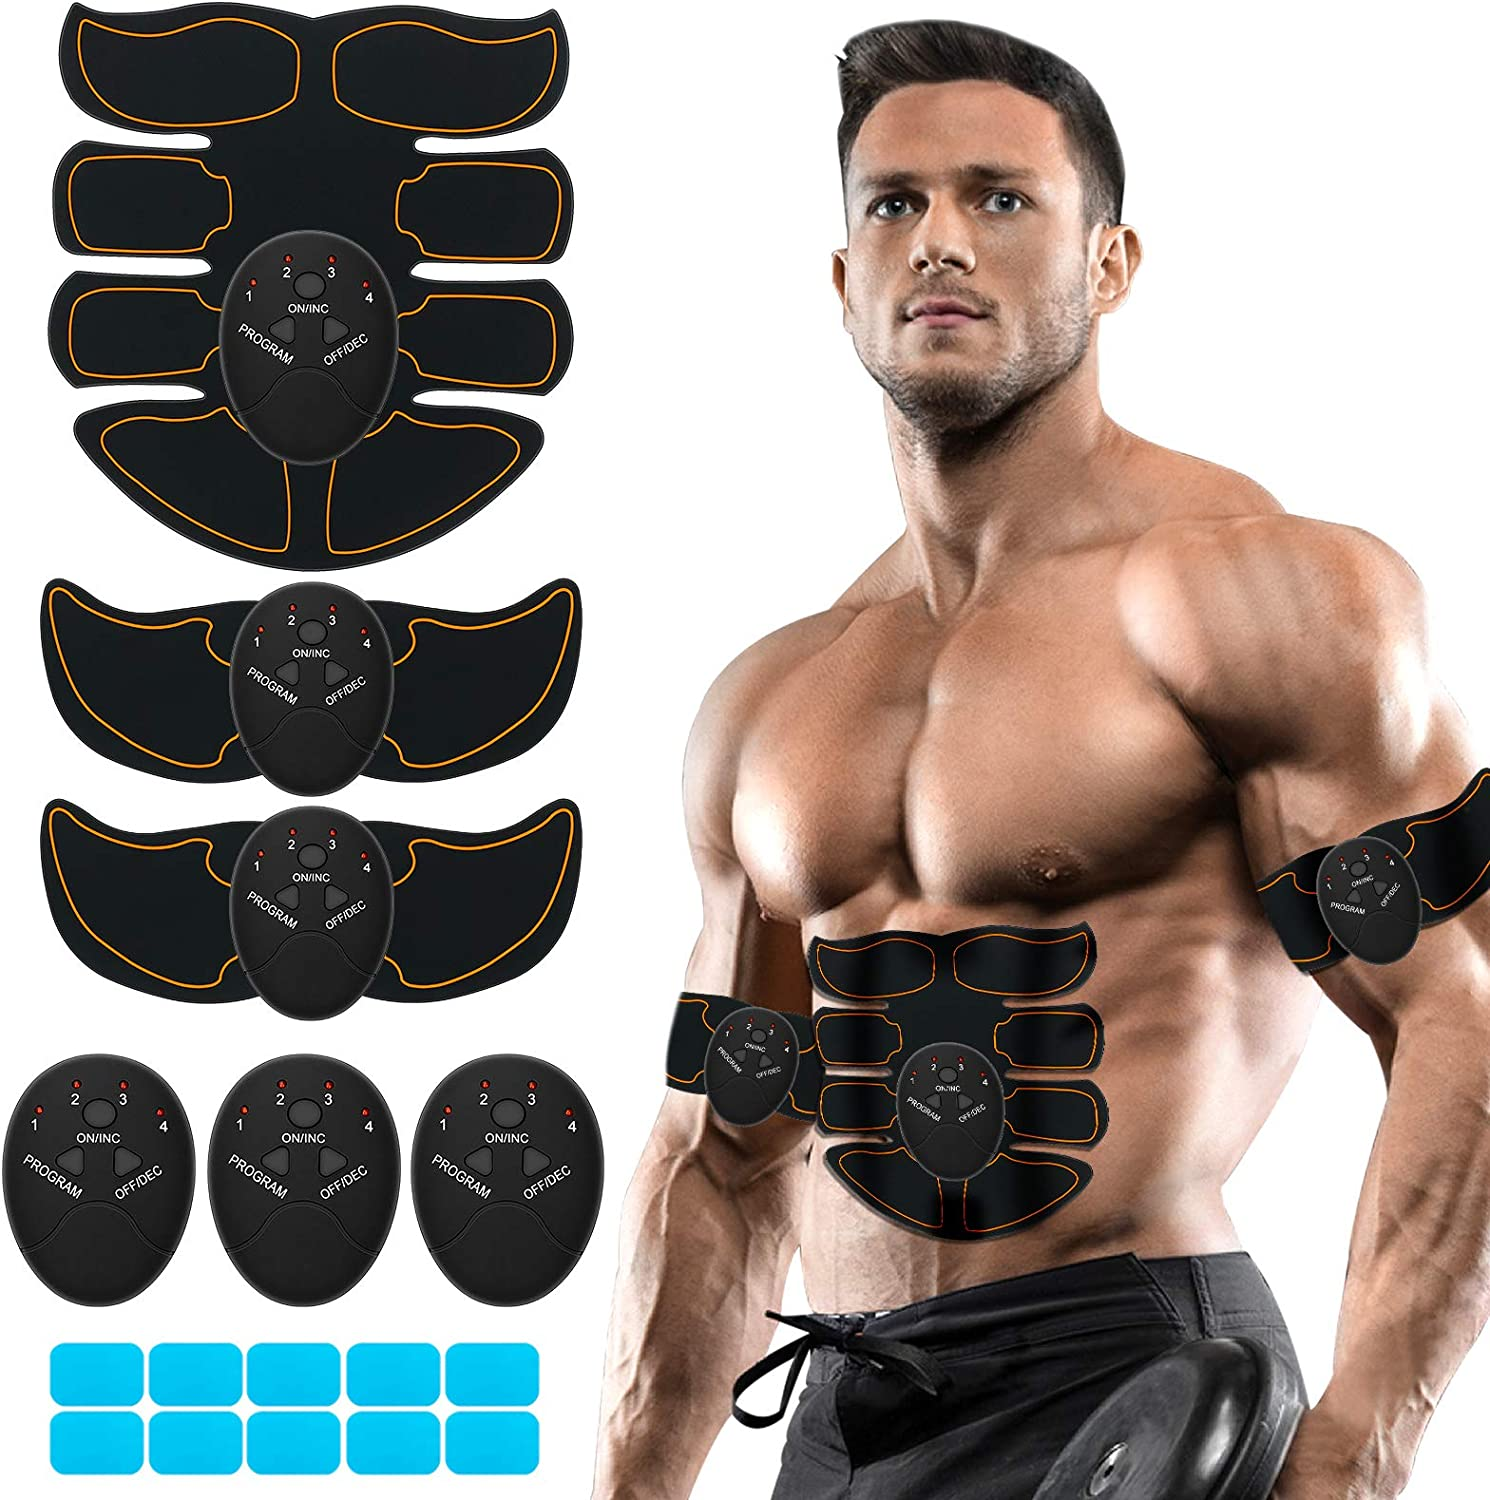 ABS Simulator Belt Muscle Trainer Abdominal TONING EMS Fitness Hip Training